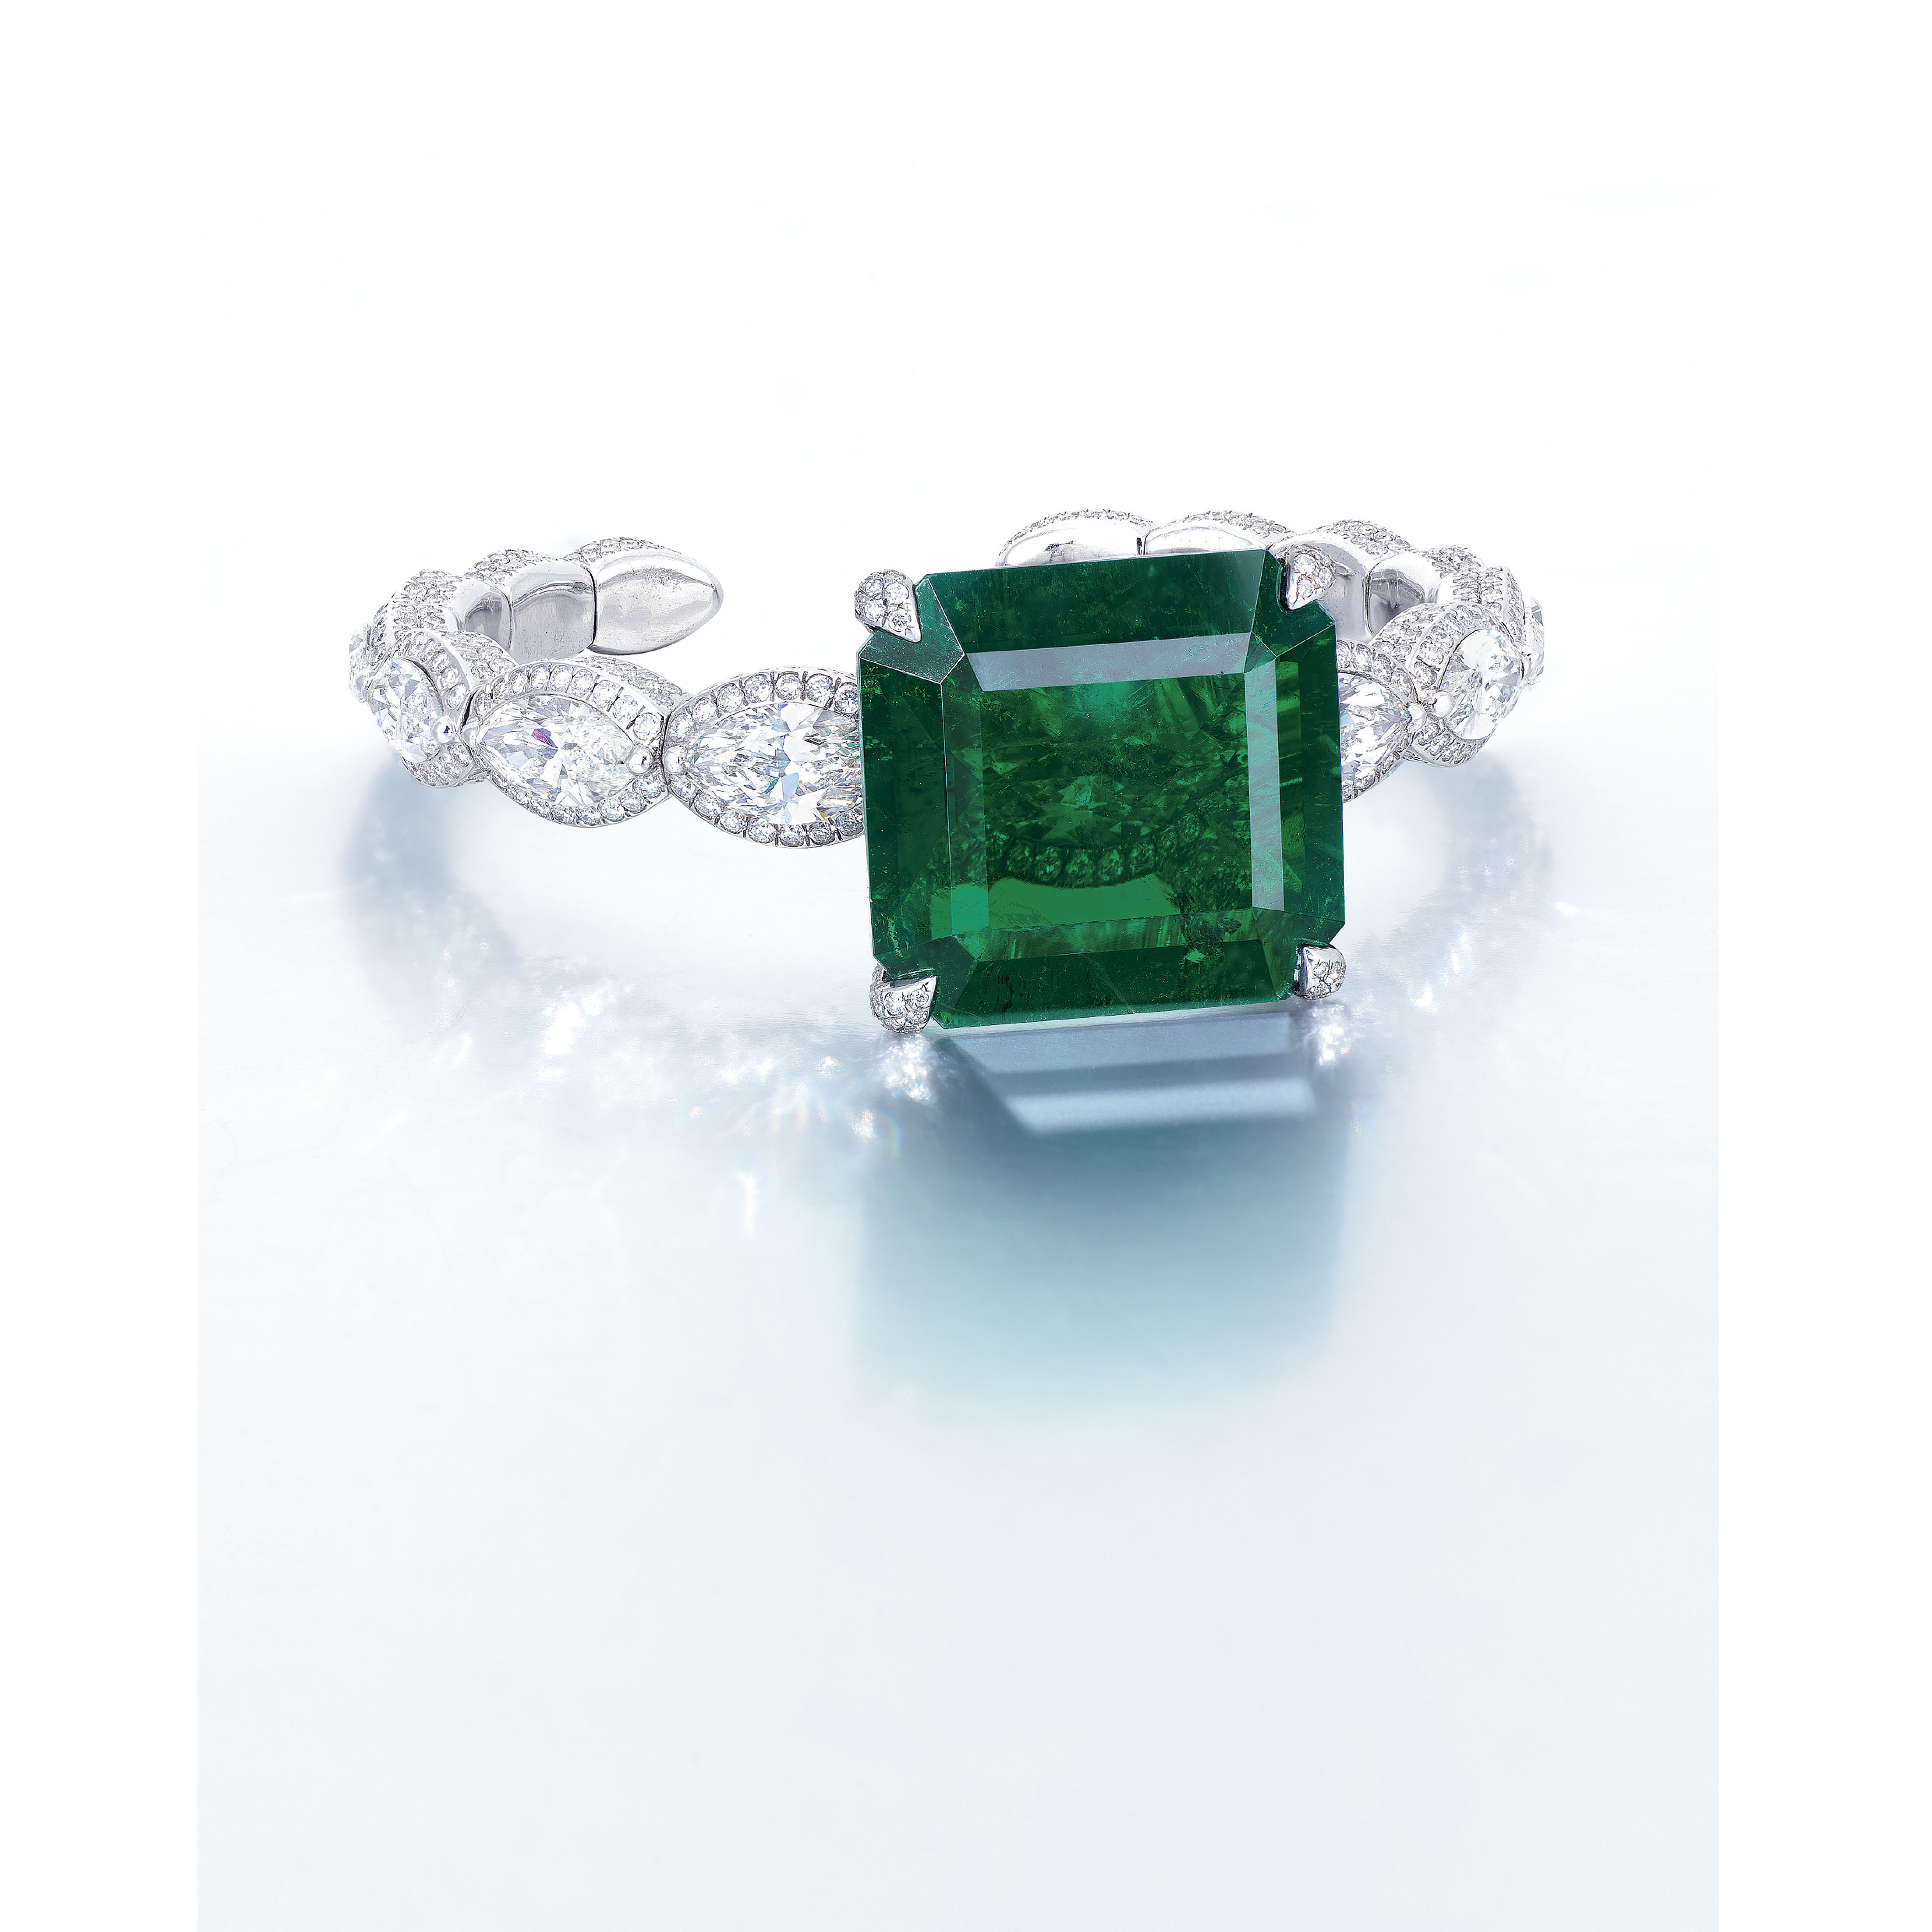 A STUNNING EMERALD AND DIAMOND BANGLE, BY ETCETERA